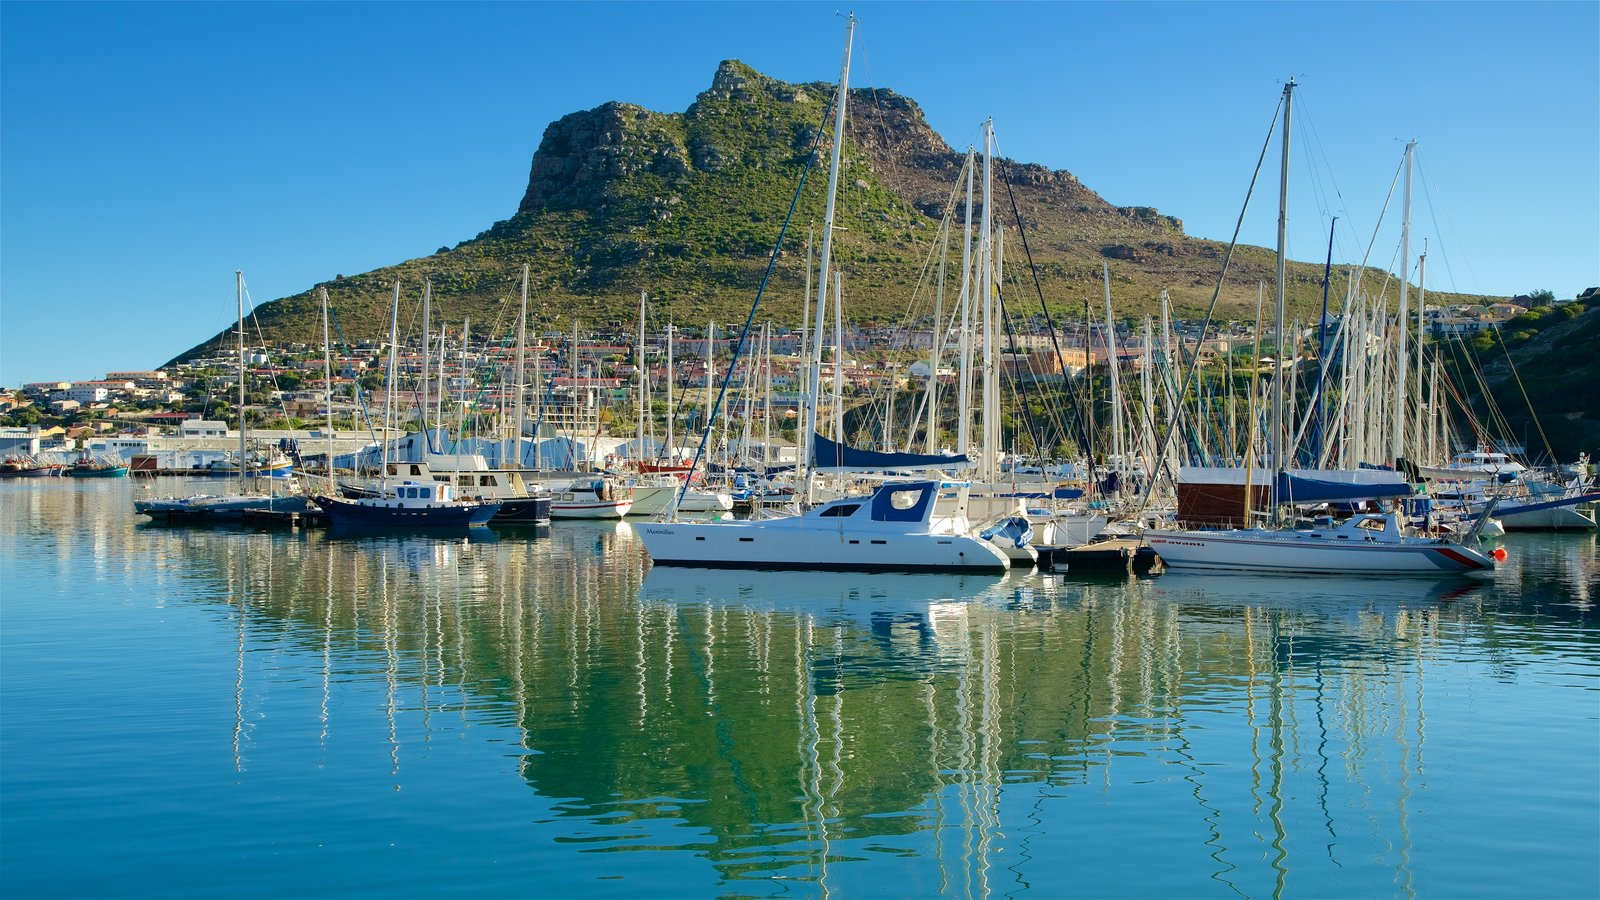 Hout Bay Beach which includes a marina